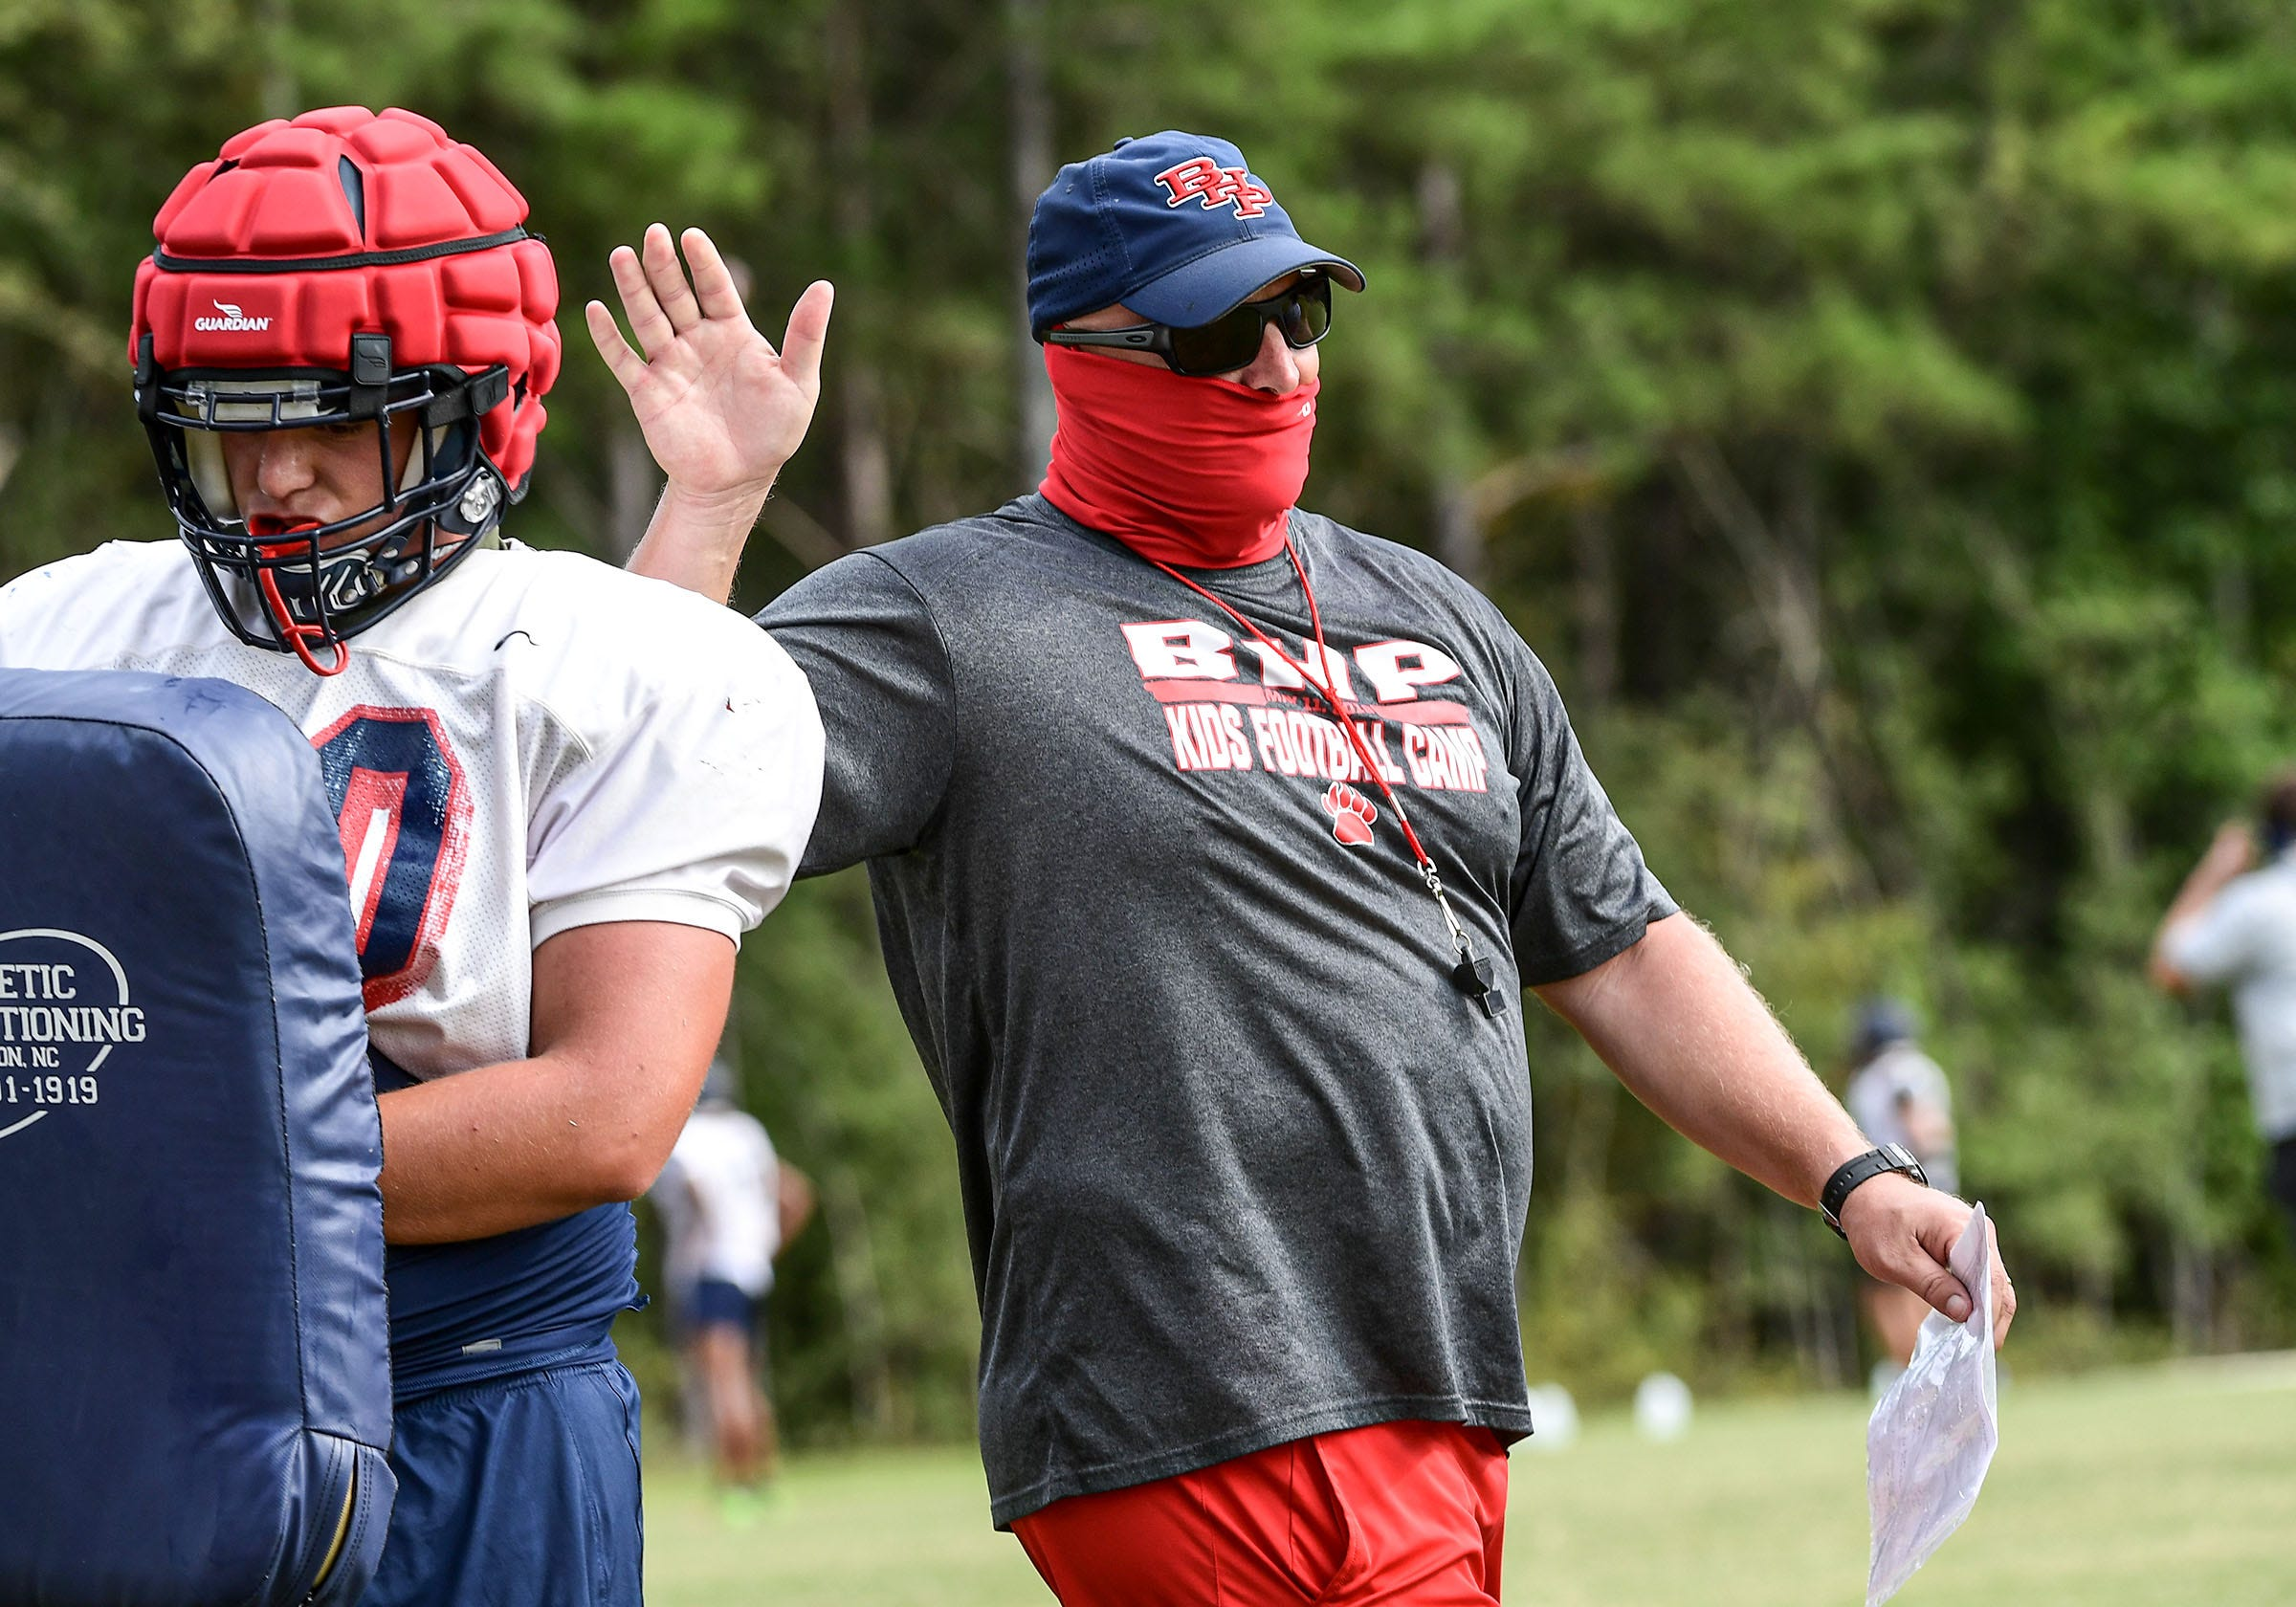 Belton-Honea Path football Head Coach Russell Blackston works with offensive linemen during practice in Honea Path, S.C. Wednesday, September 9, 2020.